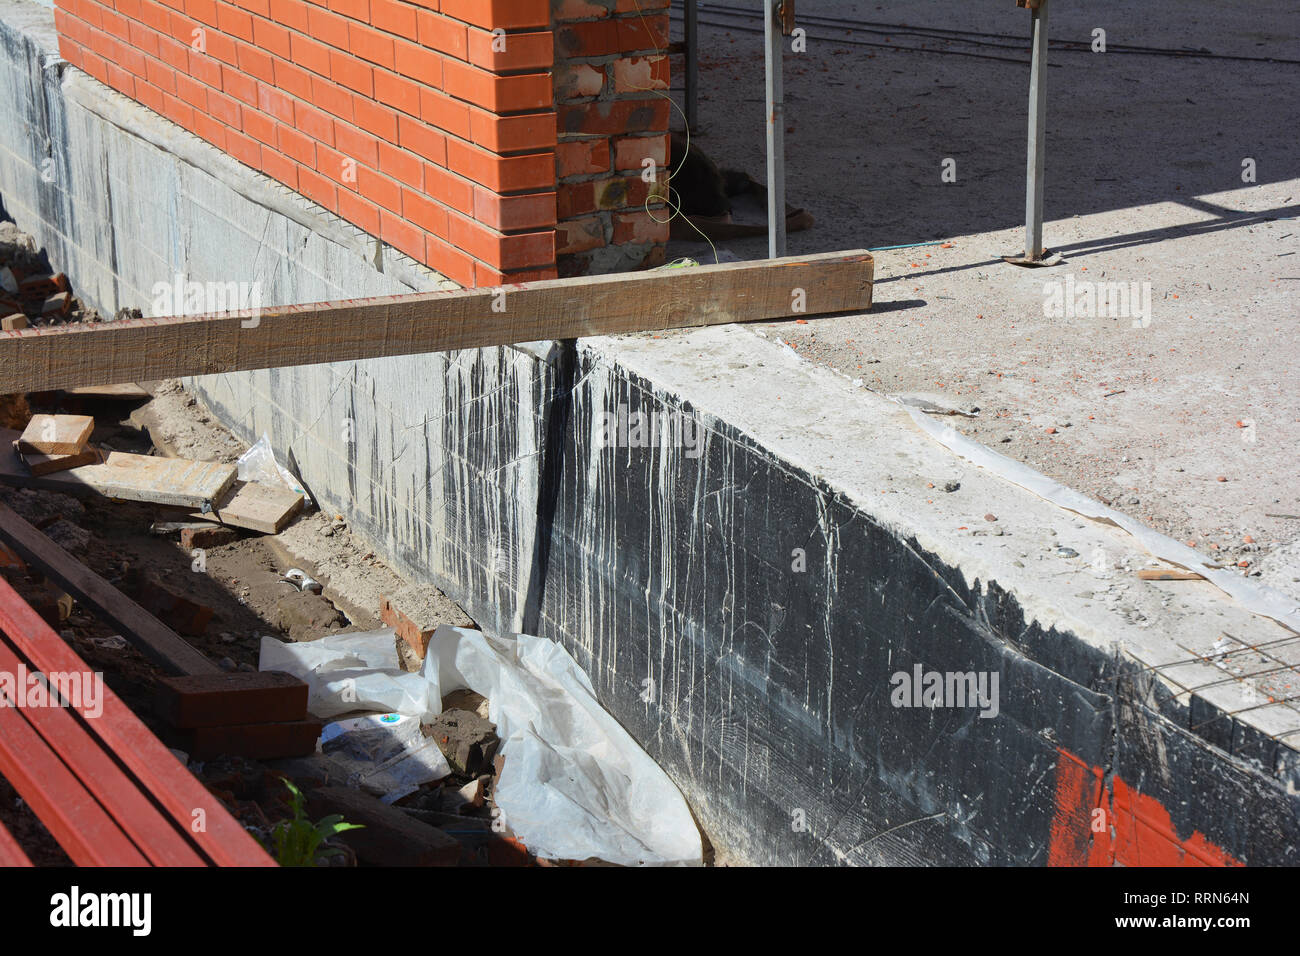 Foundation Waterproofing and Damp proofing Coatings.Waterproofing house foundation with spray on tar. Construction techniques for waterproofing baseme - Stock Image